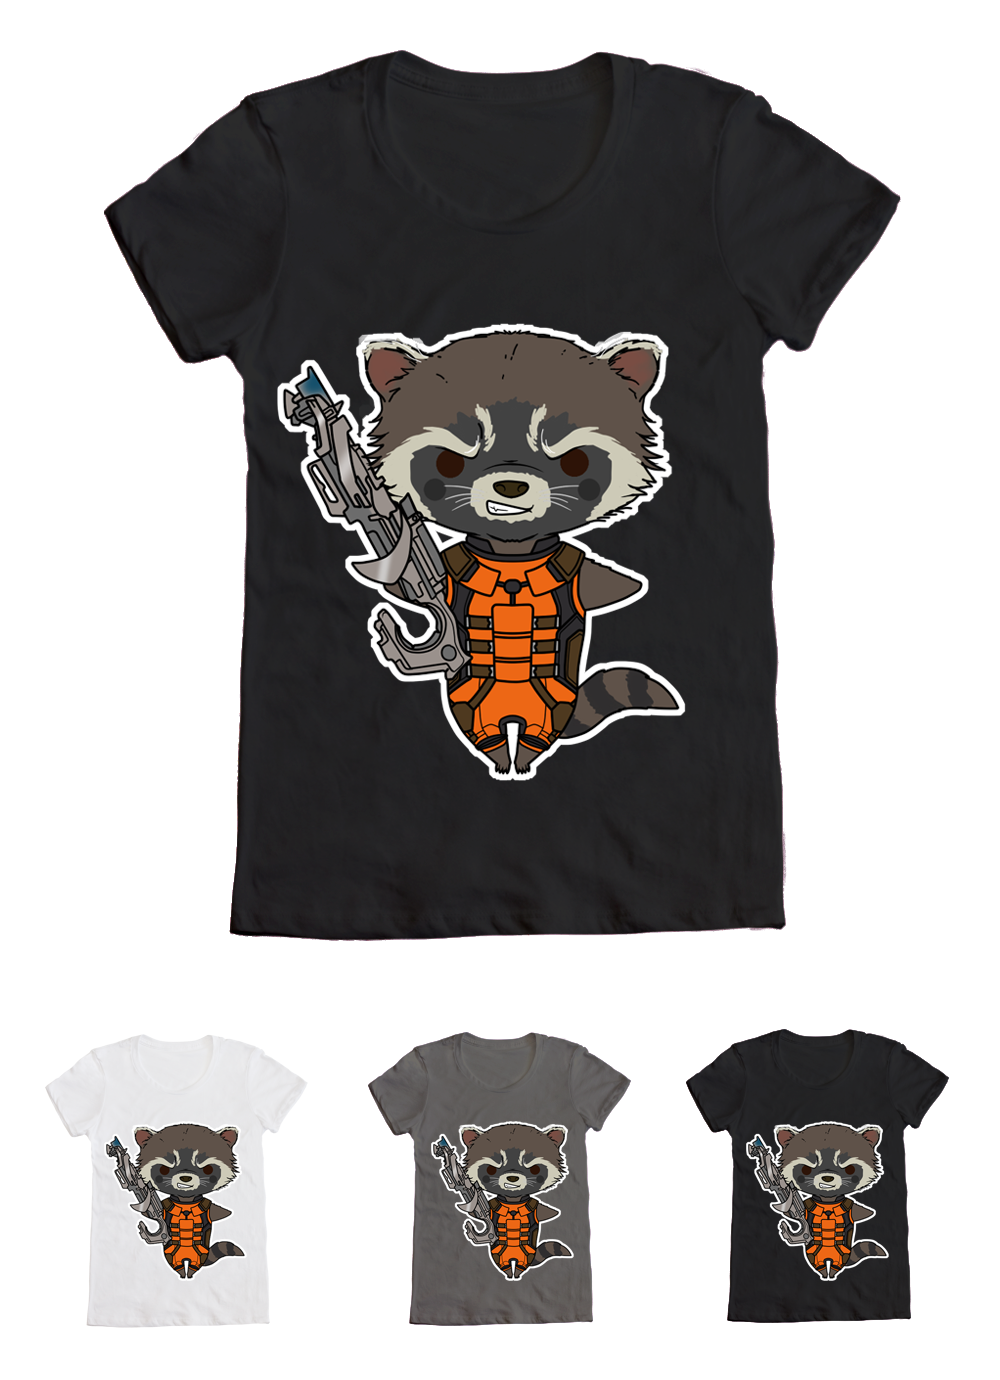 389eb63e59 GotG - Rocket Raccoon - T-Shirt